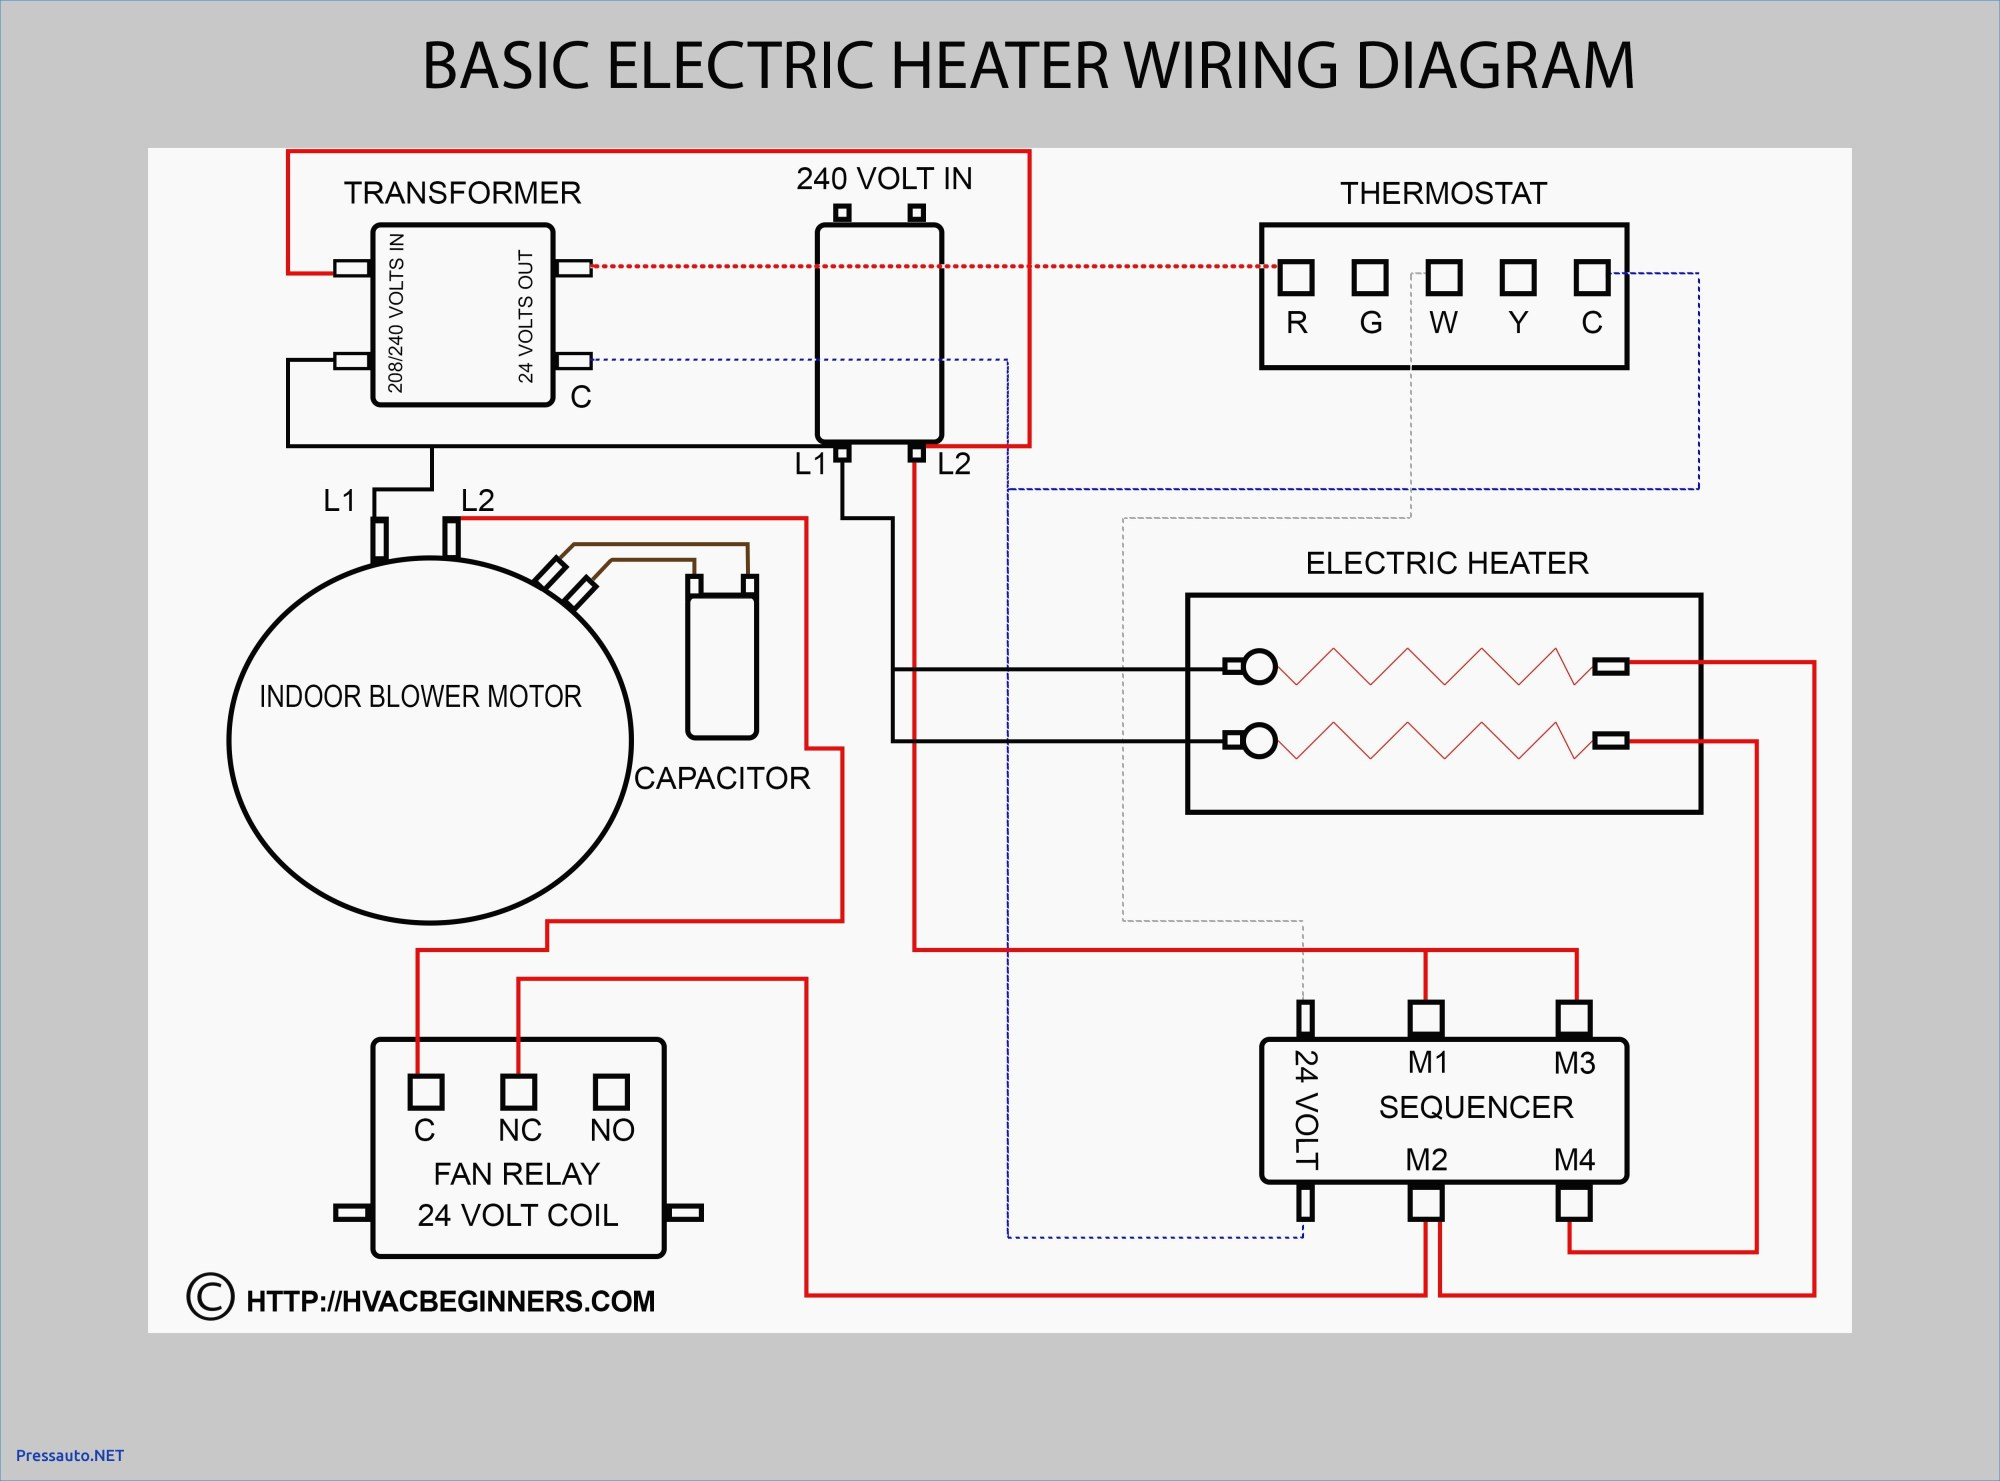 hight resolution of tracing wiring diagram blog wiring diagram tracing wiring diagrams in silhouette studios tracing wiring diagram